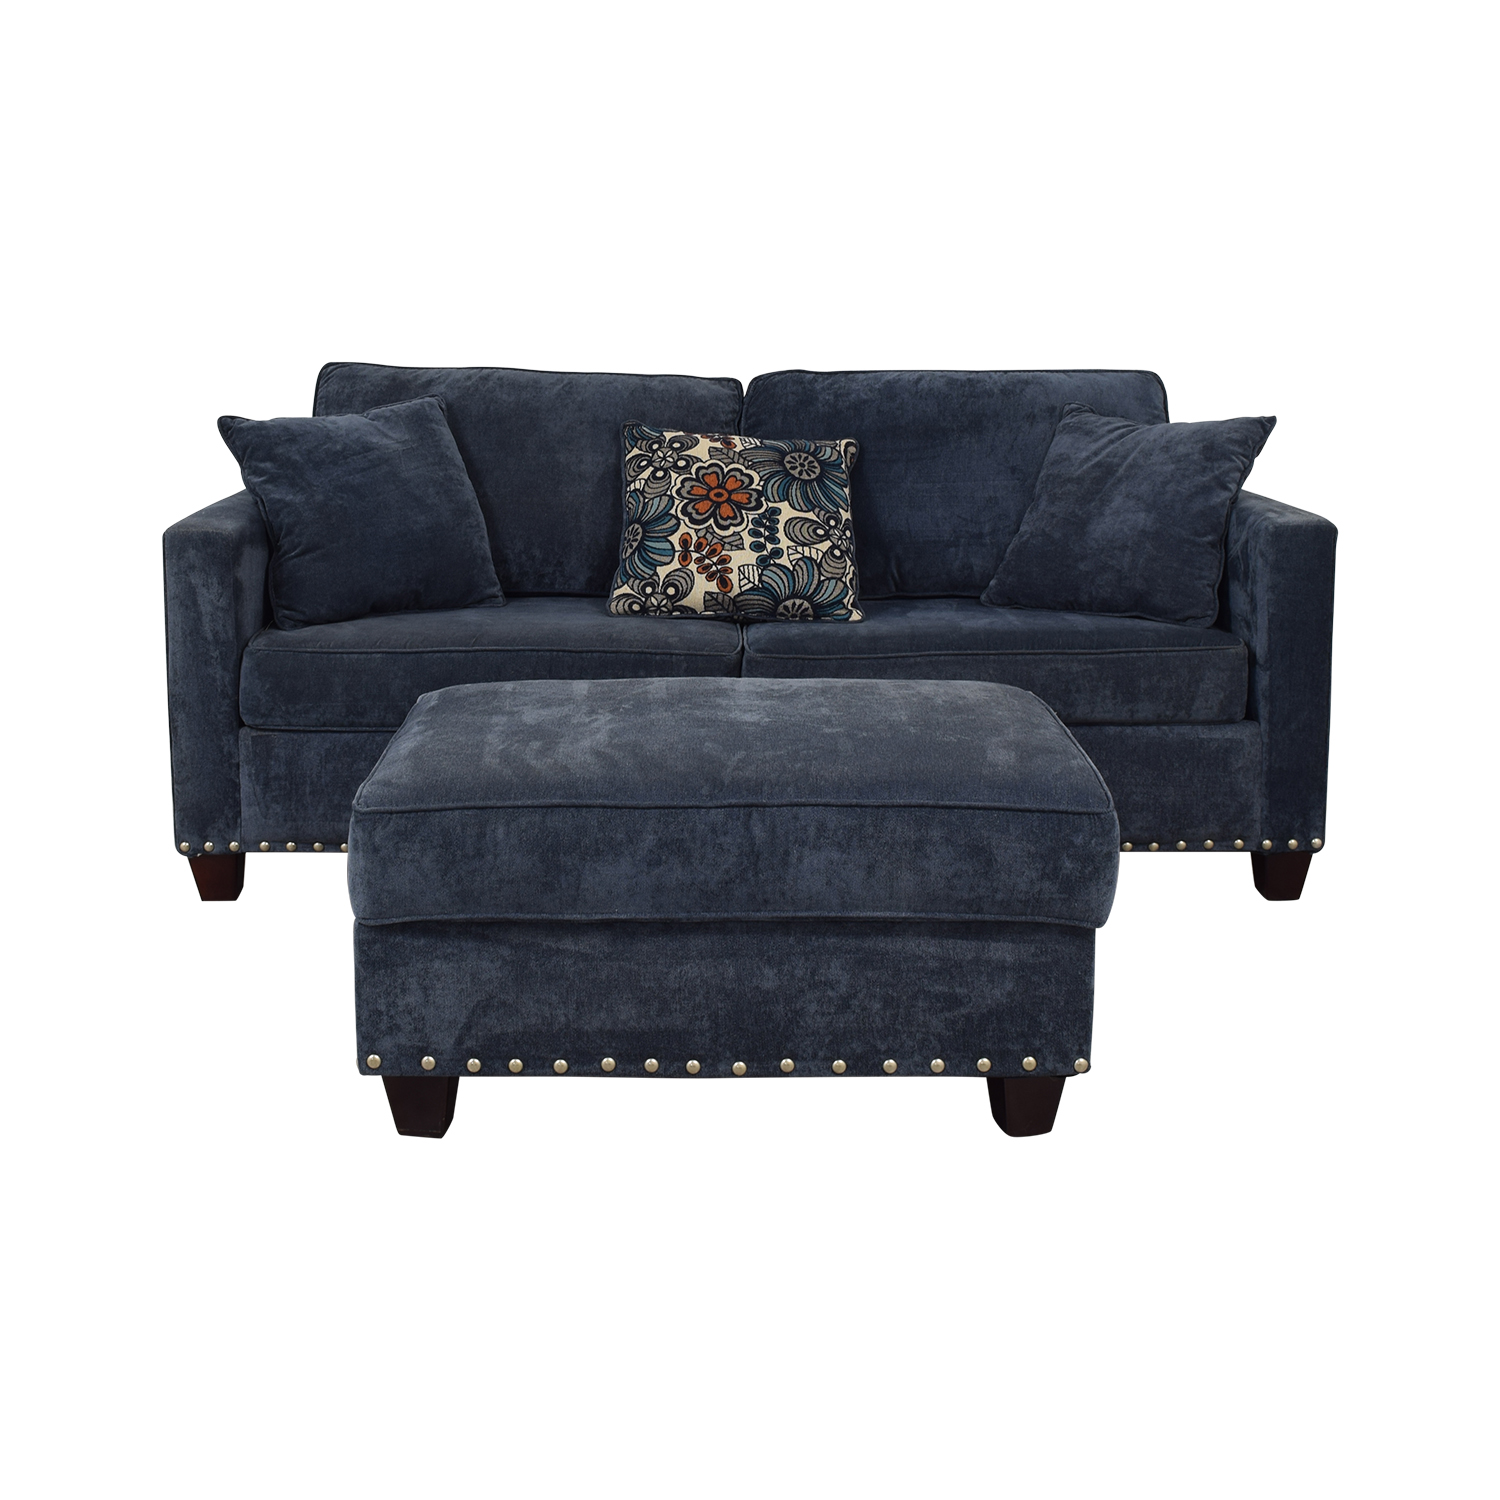 Bobs discount furniture bobs discount furniture melanie blue nailhead sofa and ottoman